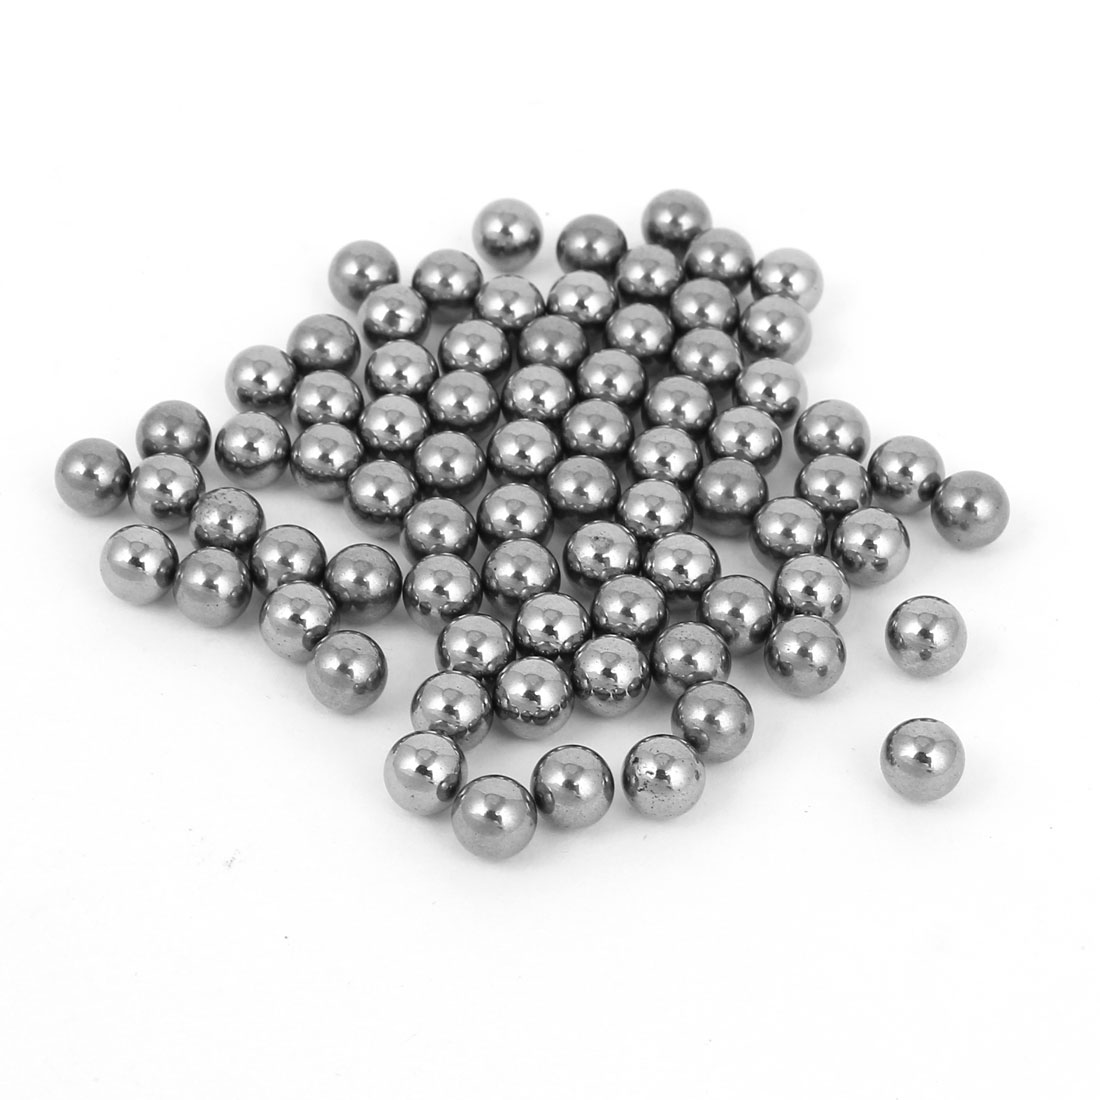 100 Pcs Bike Bicycle Bearing Parts 6mm Diameter Steel Bearing Ball Silver Tone